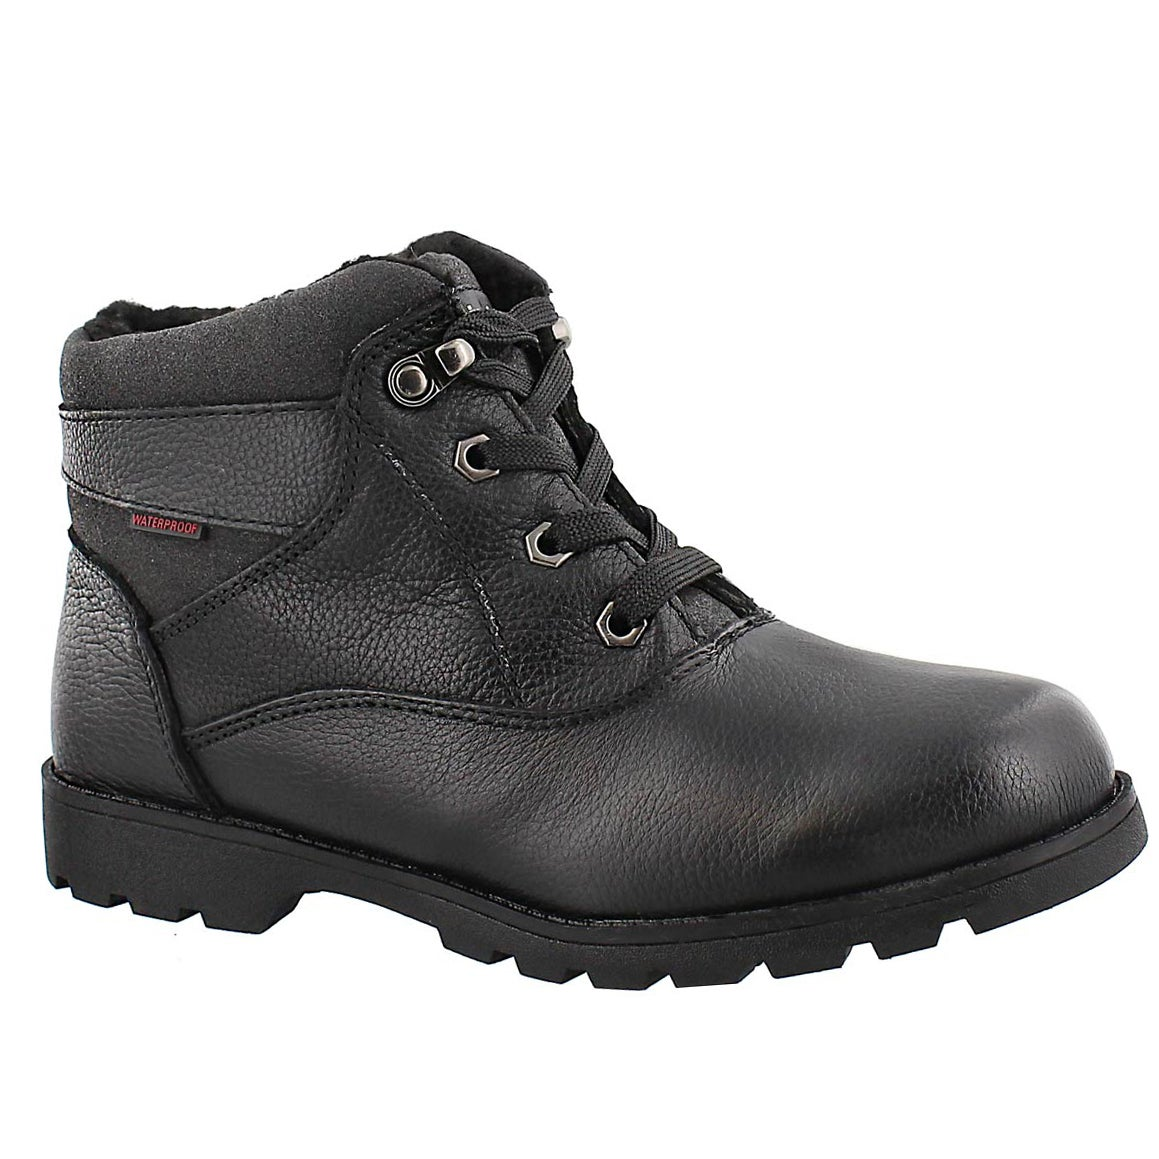 Women's SAMANTHA 2 black waterproof lace-up boots